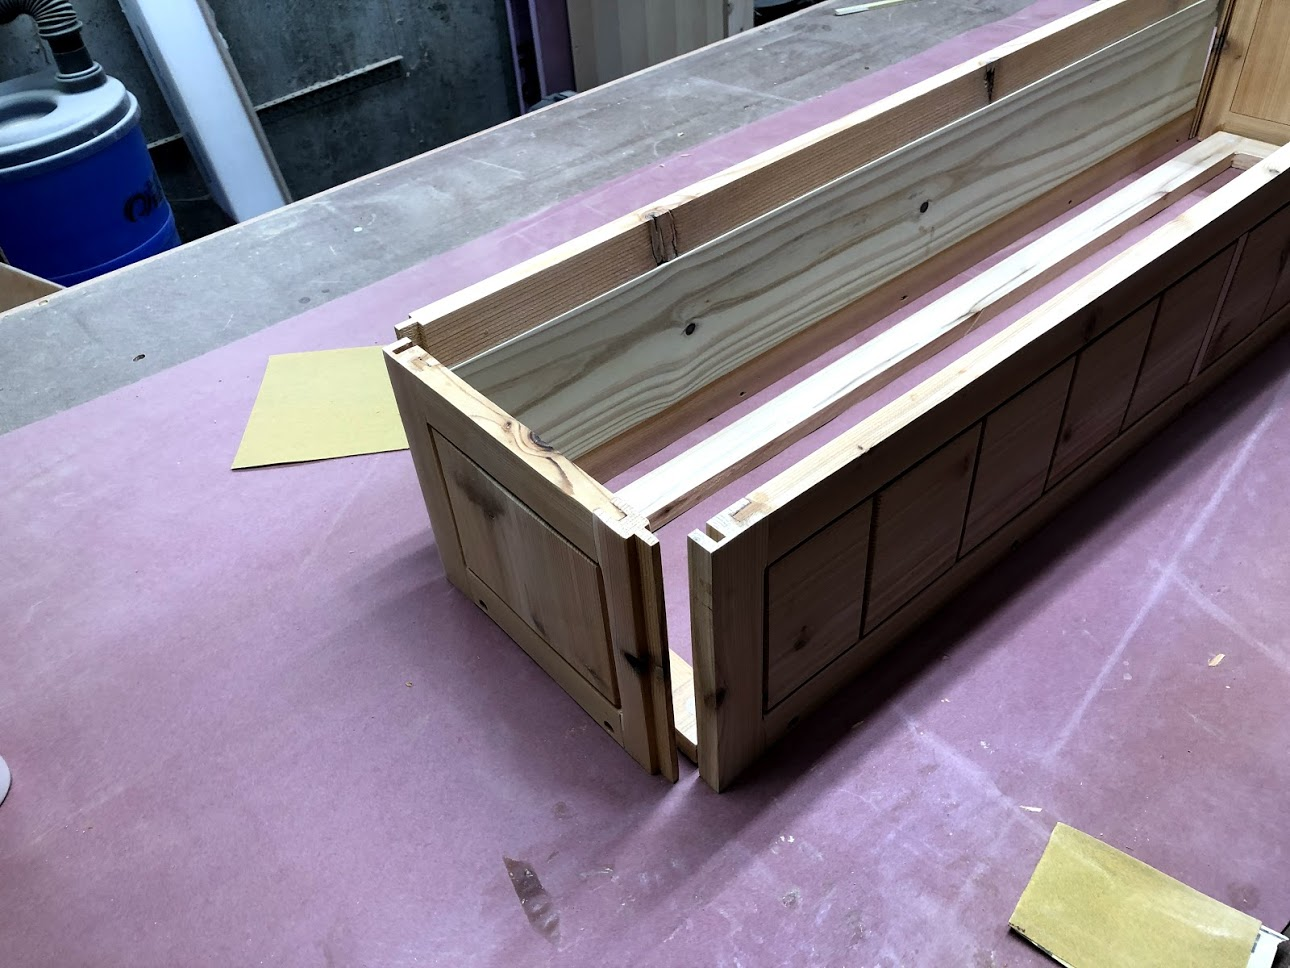 Here you can see how the back and front of the window box will fit into each other.